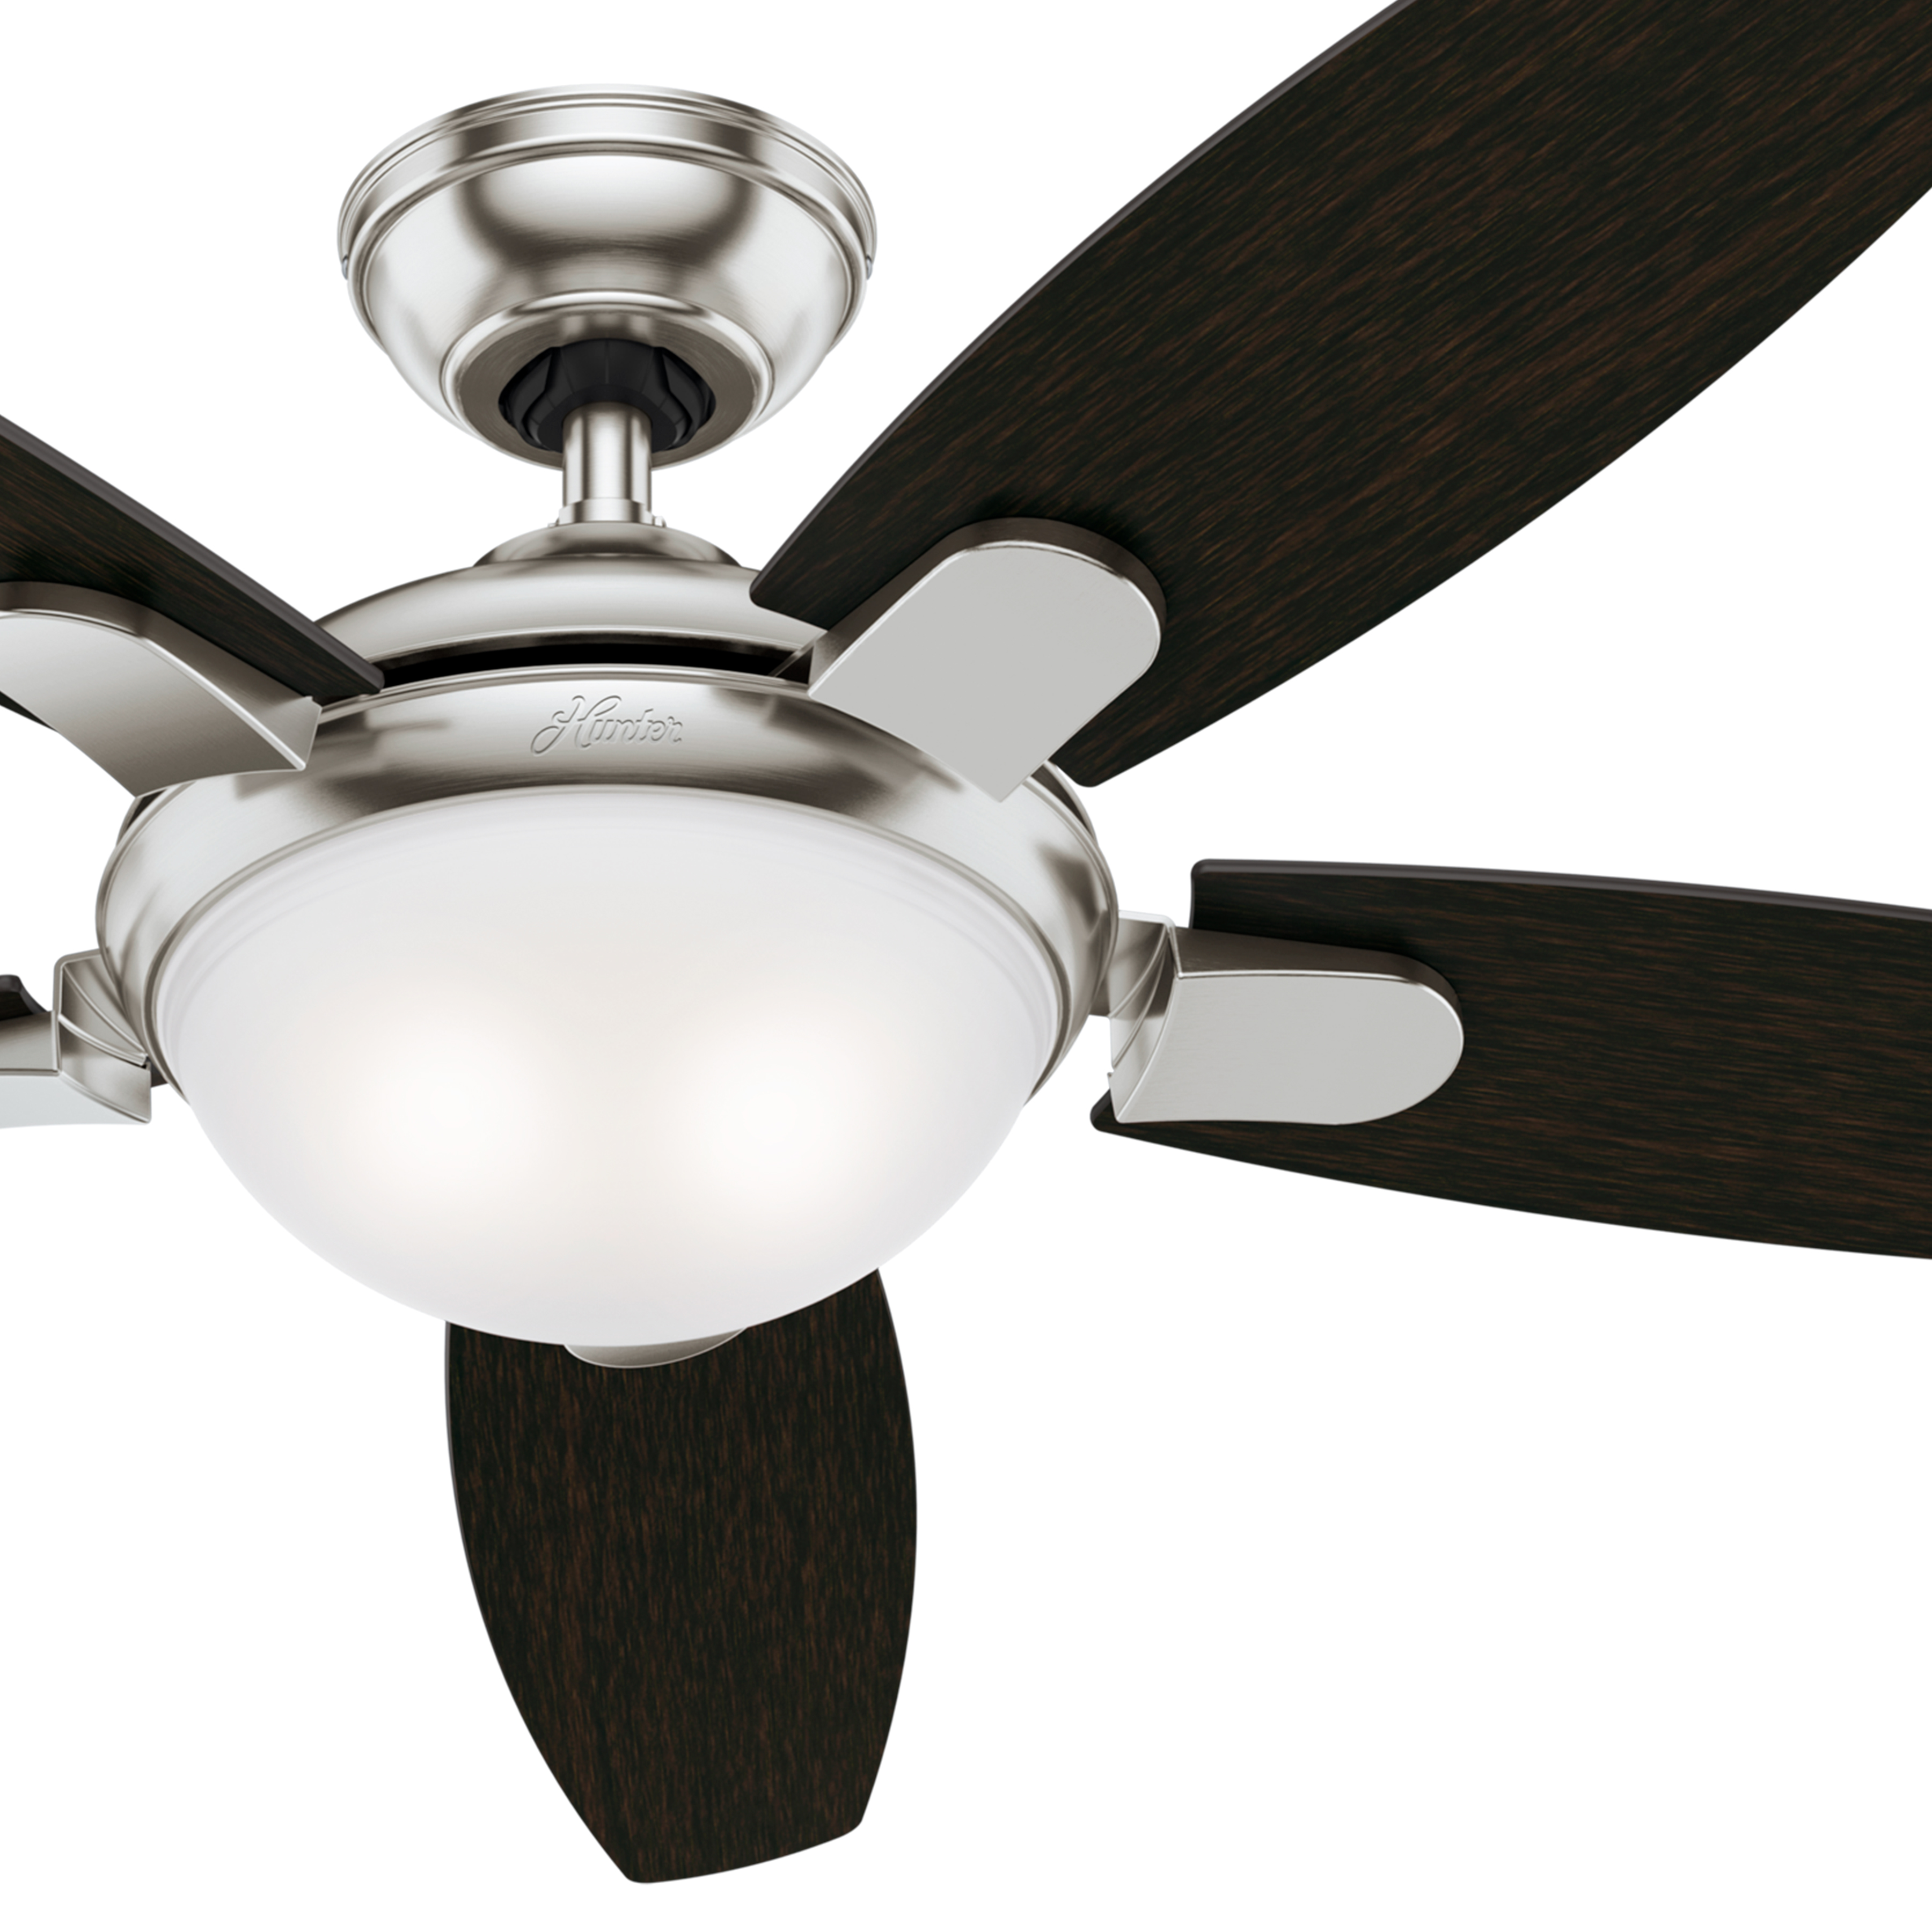 "Hunter Fan 54"" Contemporary Ceiling Fan in Brushed Nickel with LED Light and Remote Control (Certified Refurbished)"